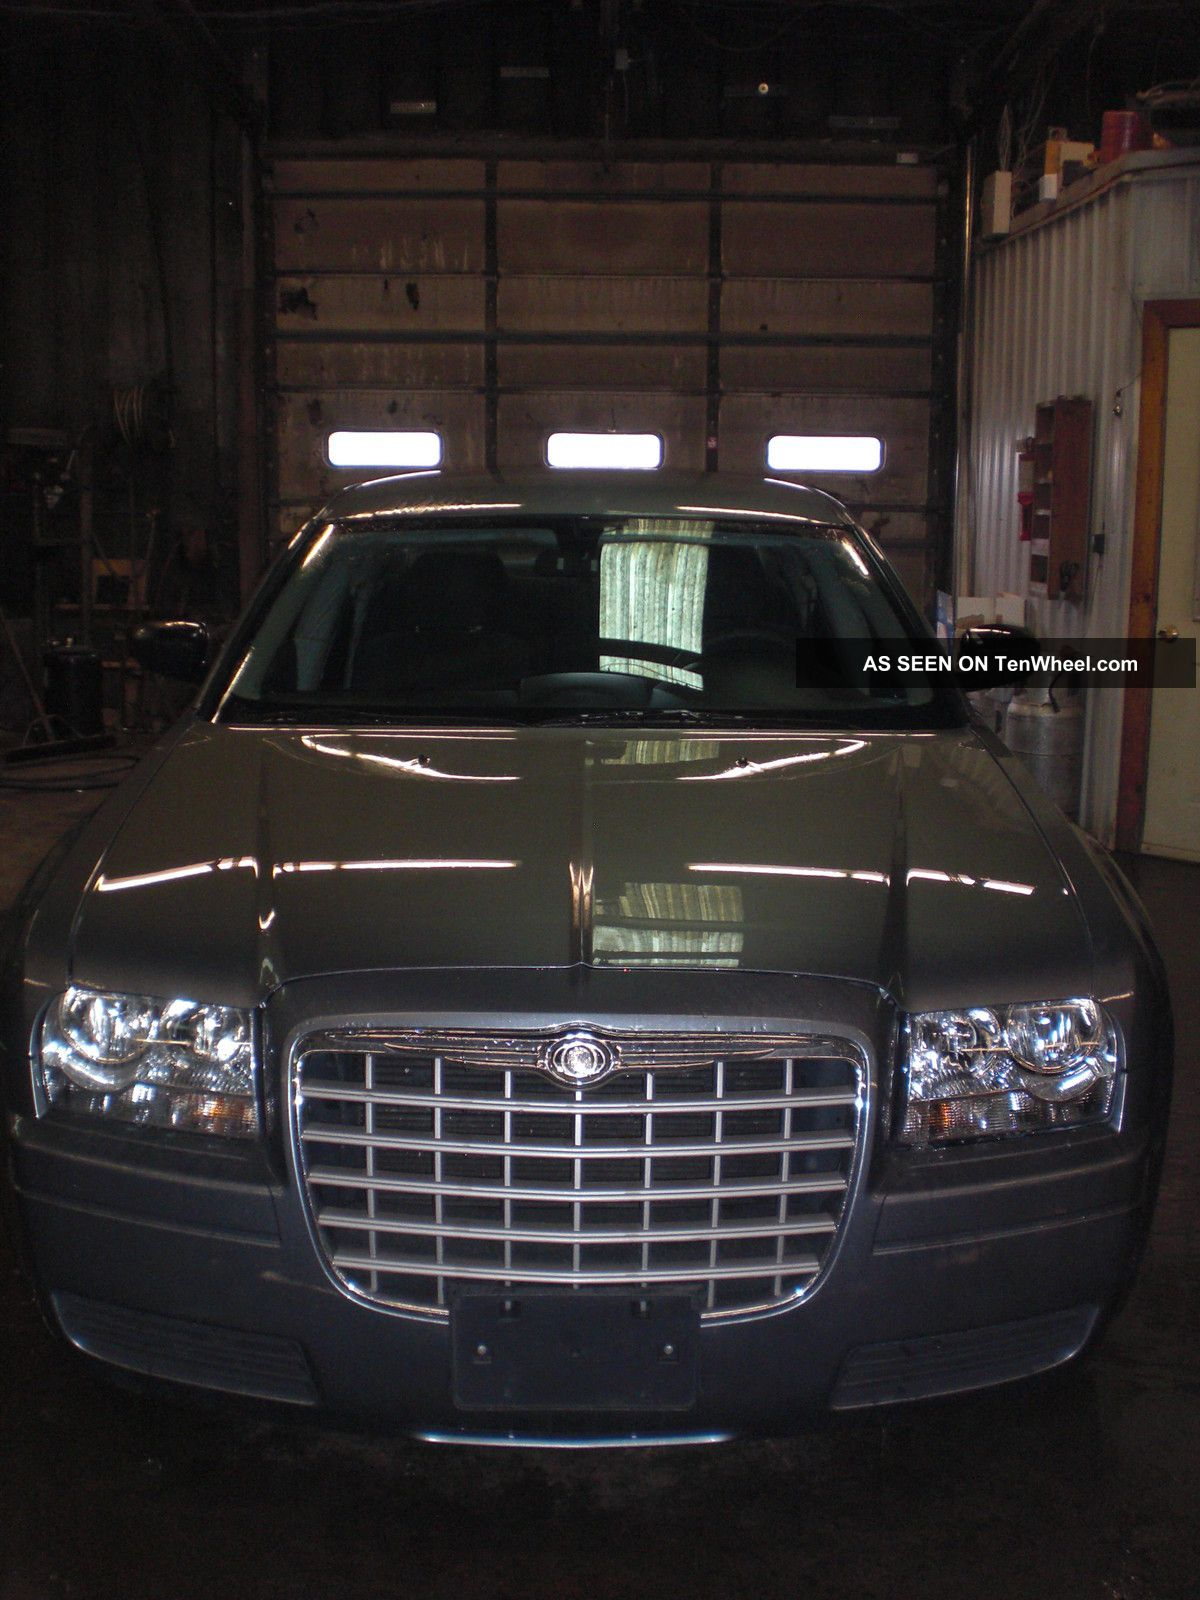 2006 Chrysler 300 With 2 7 Liter Motor And 4 Sd Automatic Transmission